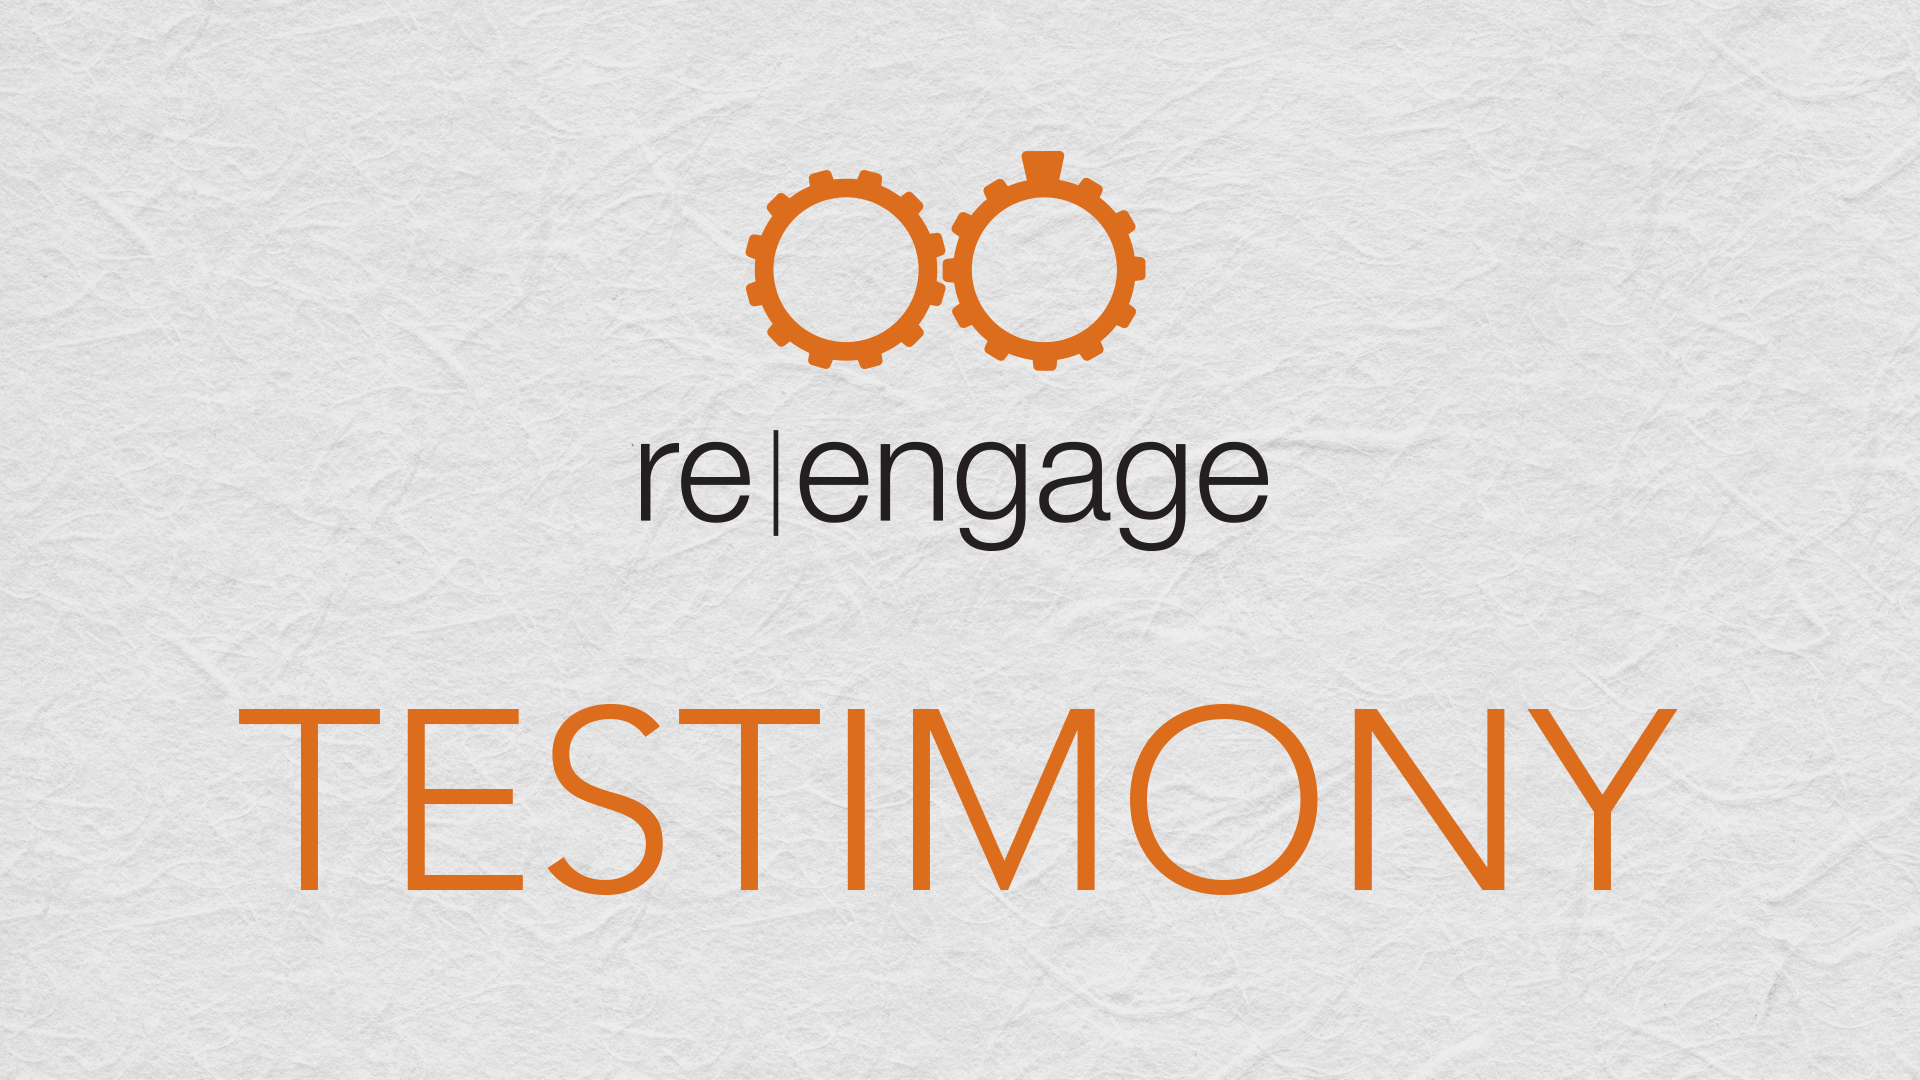 Robert and Linda Green - re|engage Testimony